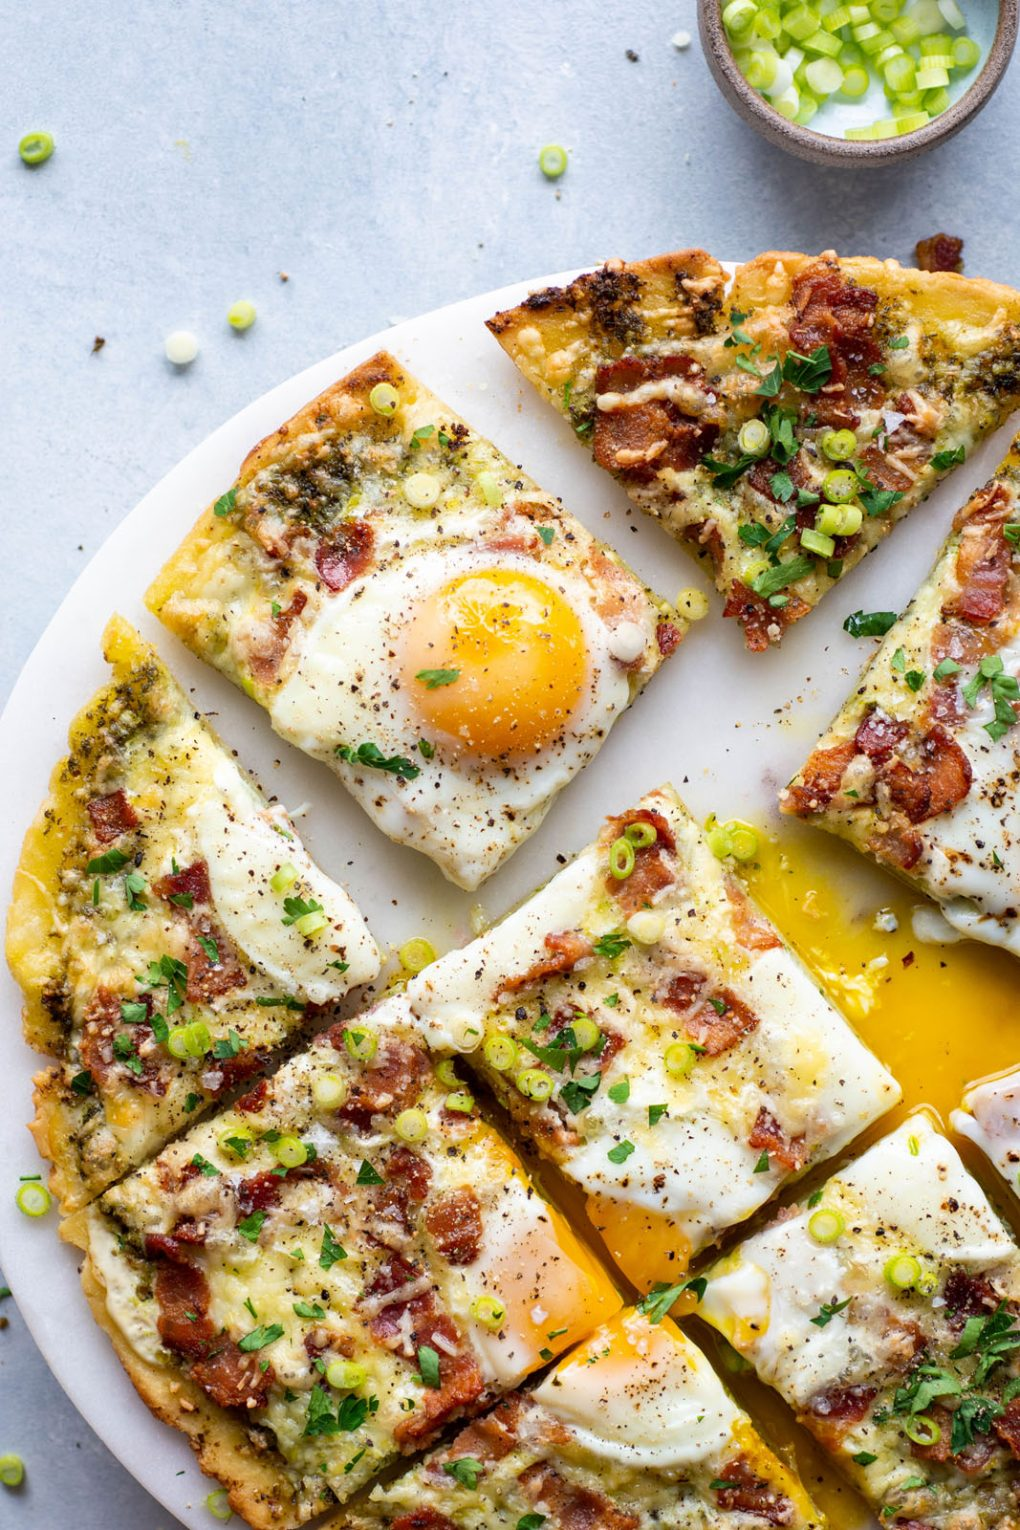 Overhead shot of a breakfast pizza. Topped with melty cheese, crispy bacon, sunny side up eggs, and fresh herbs and green onions. On a light colored marble serving tray and a light background.